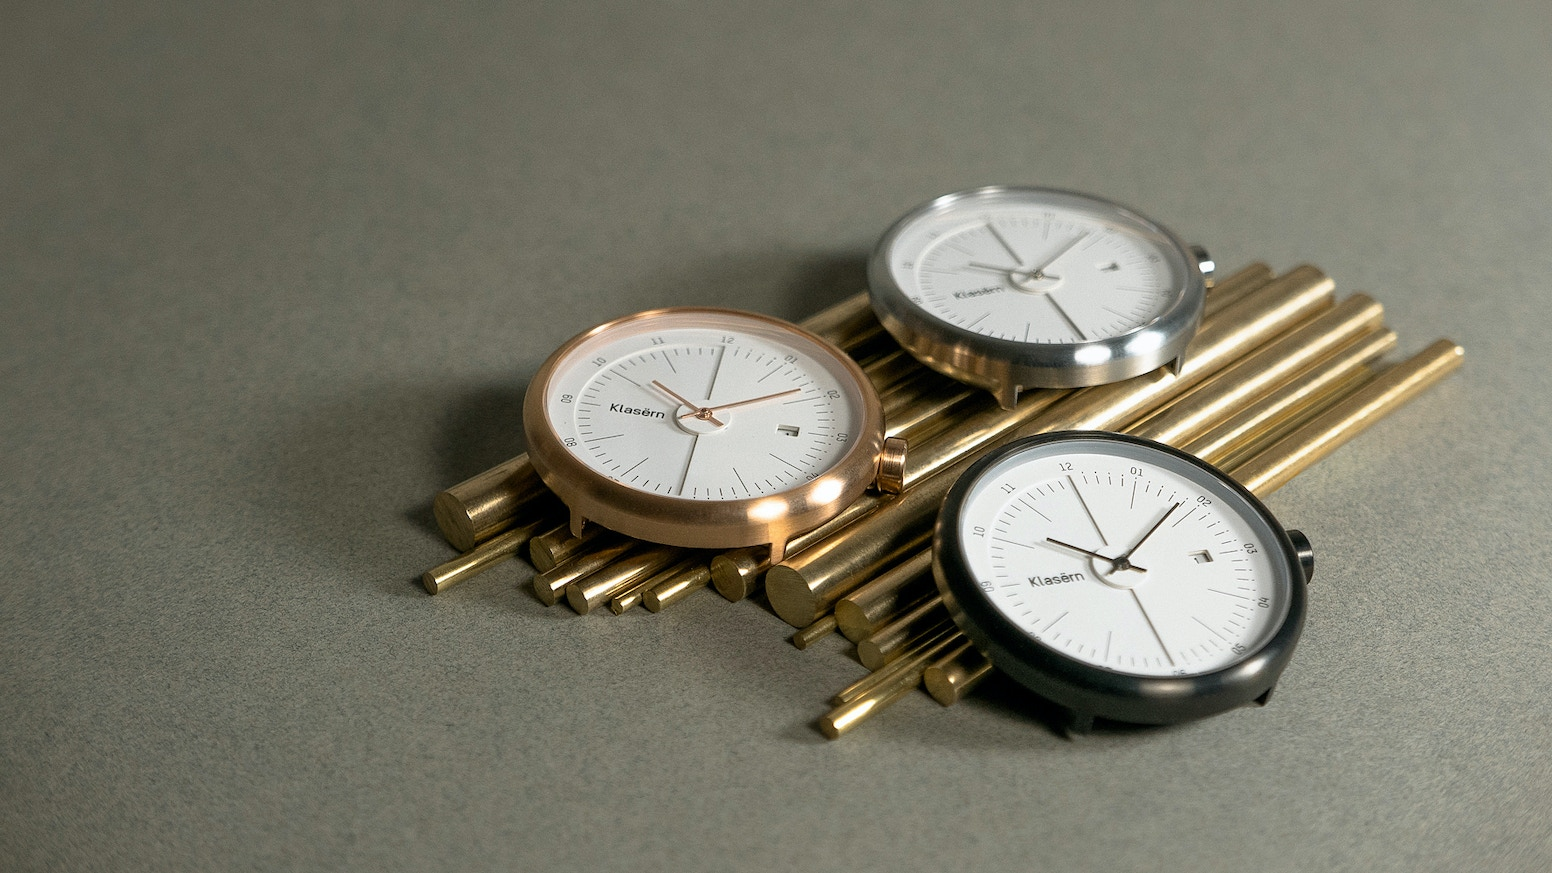 Lifestyle watches inspired by the look of classic, yet modern, evidenced by hints of timelessness wed to a touch of futurism.